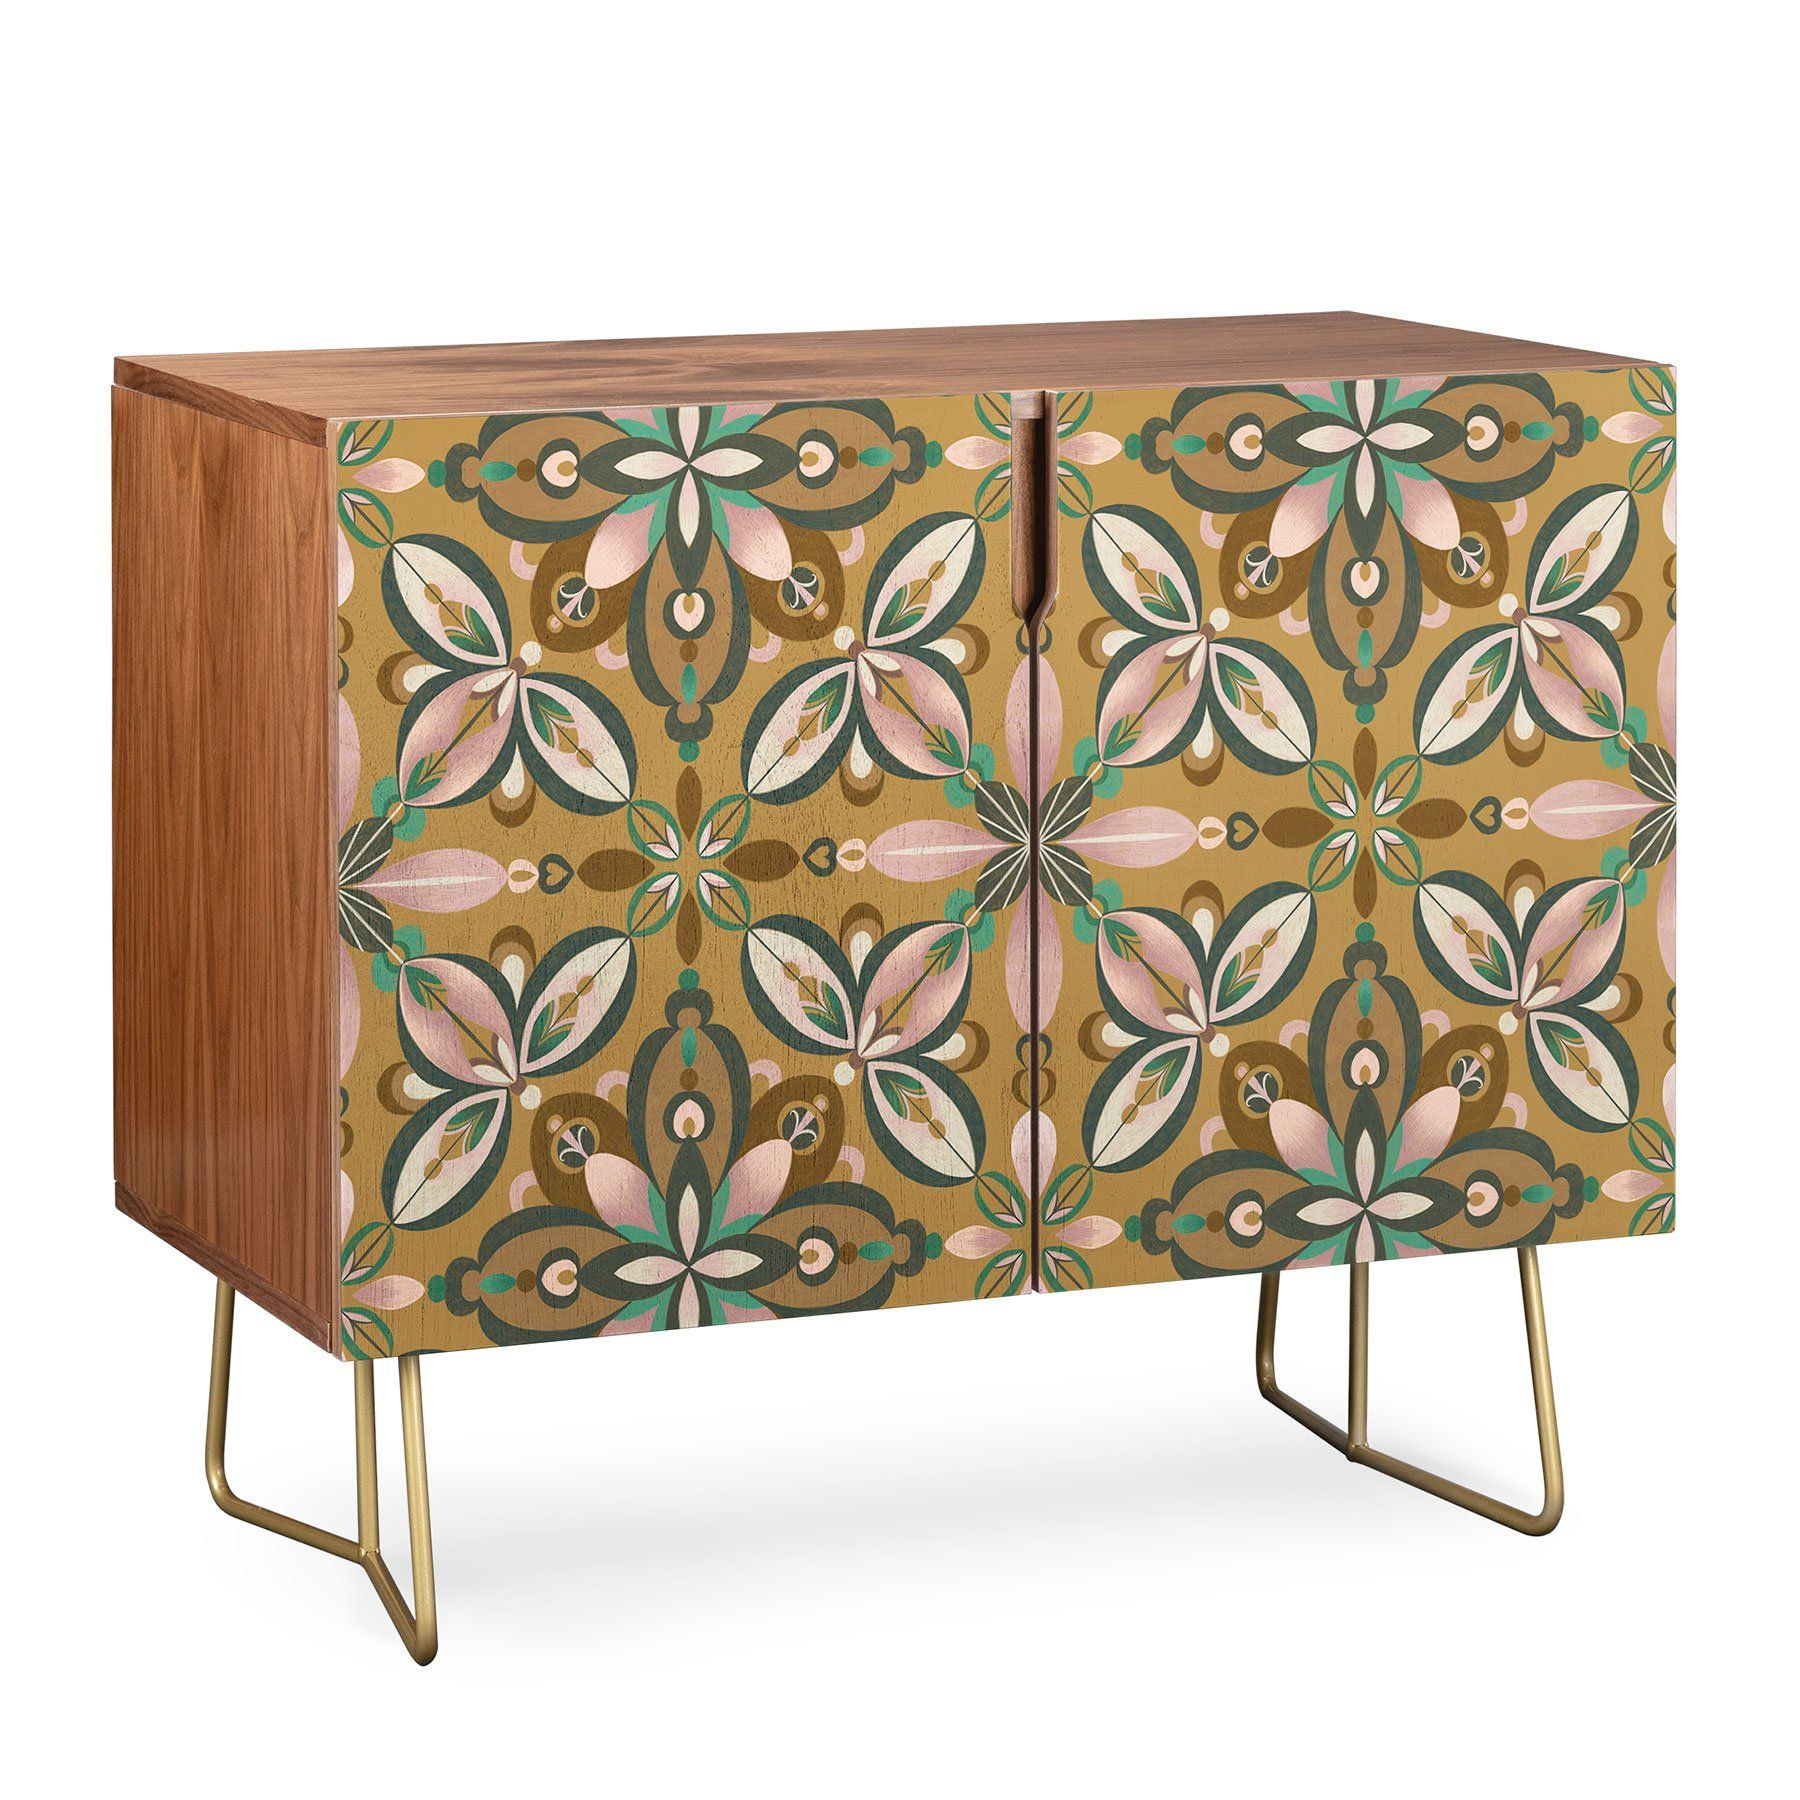 Pimlada Phuapradit Floral Tile In Yellow Ochre Credenza In Inside Lovely Floral Credenzas (View 6 of 30)